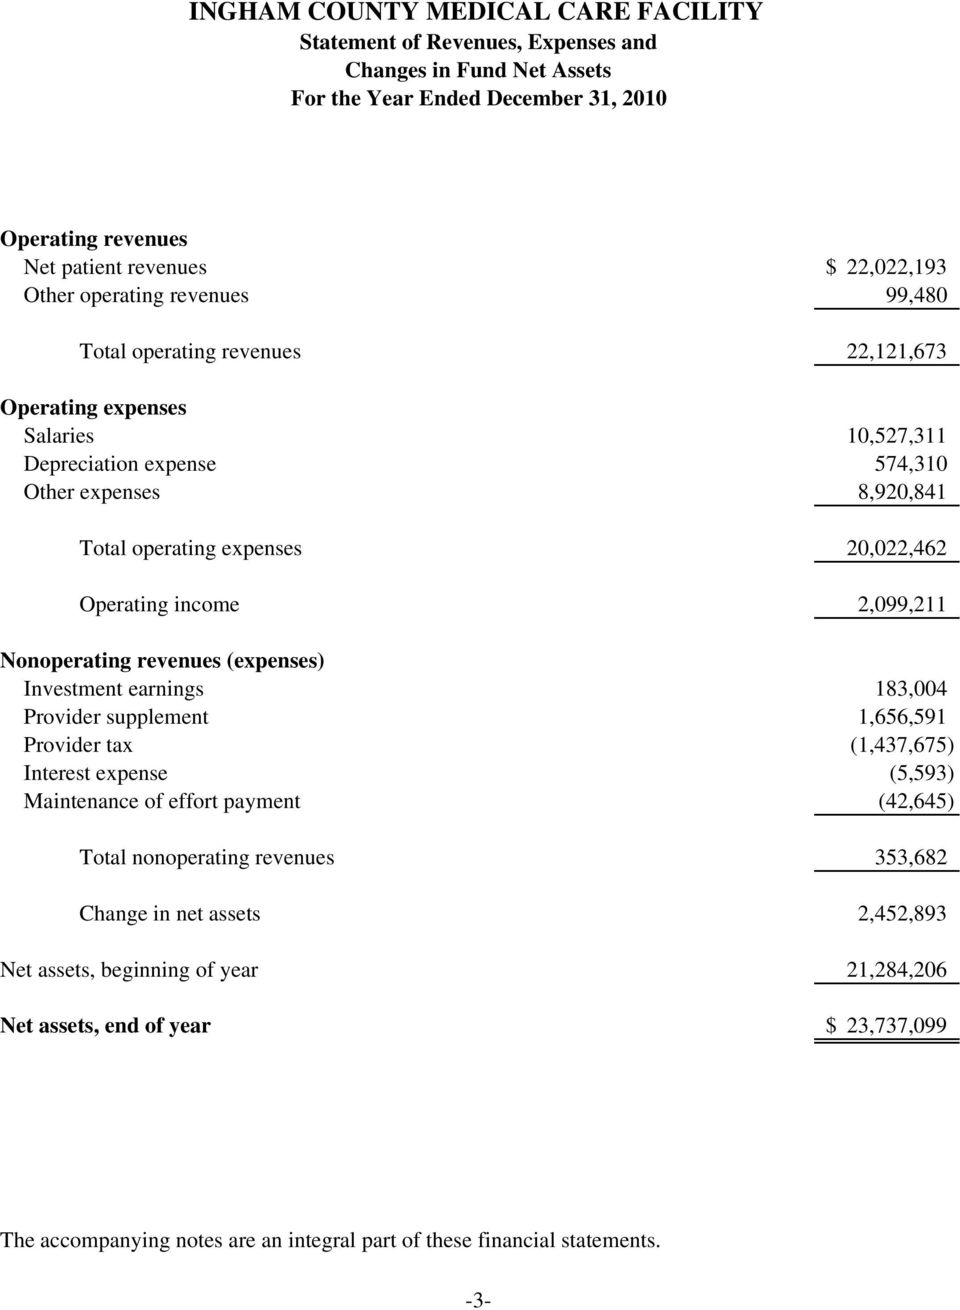 Nonoperating revenues (expenses) Investment earnings 183,004 Provider supplement 1,656,591 Provider tax (1,437,675) Interest expense (5,593) Maintenance of effort payment (42,645) Total